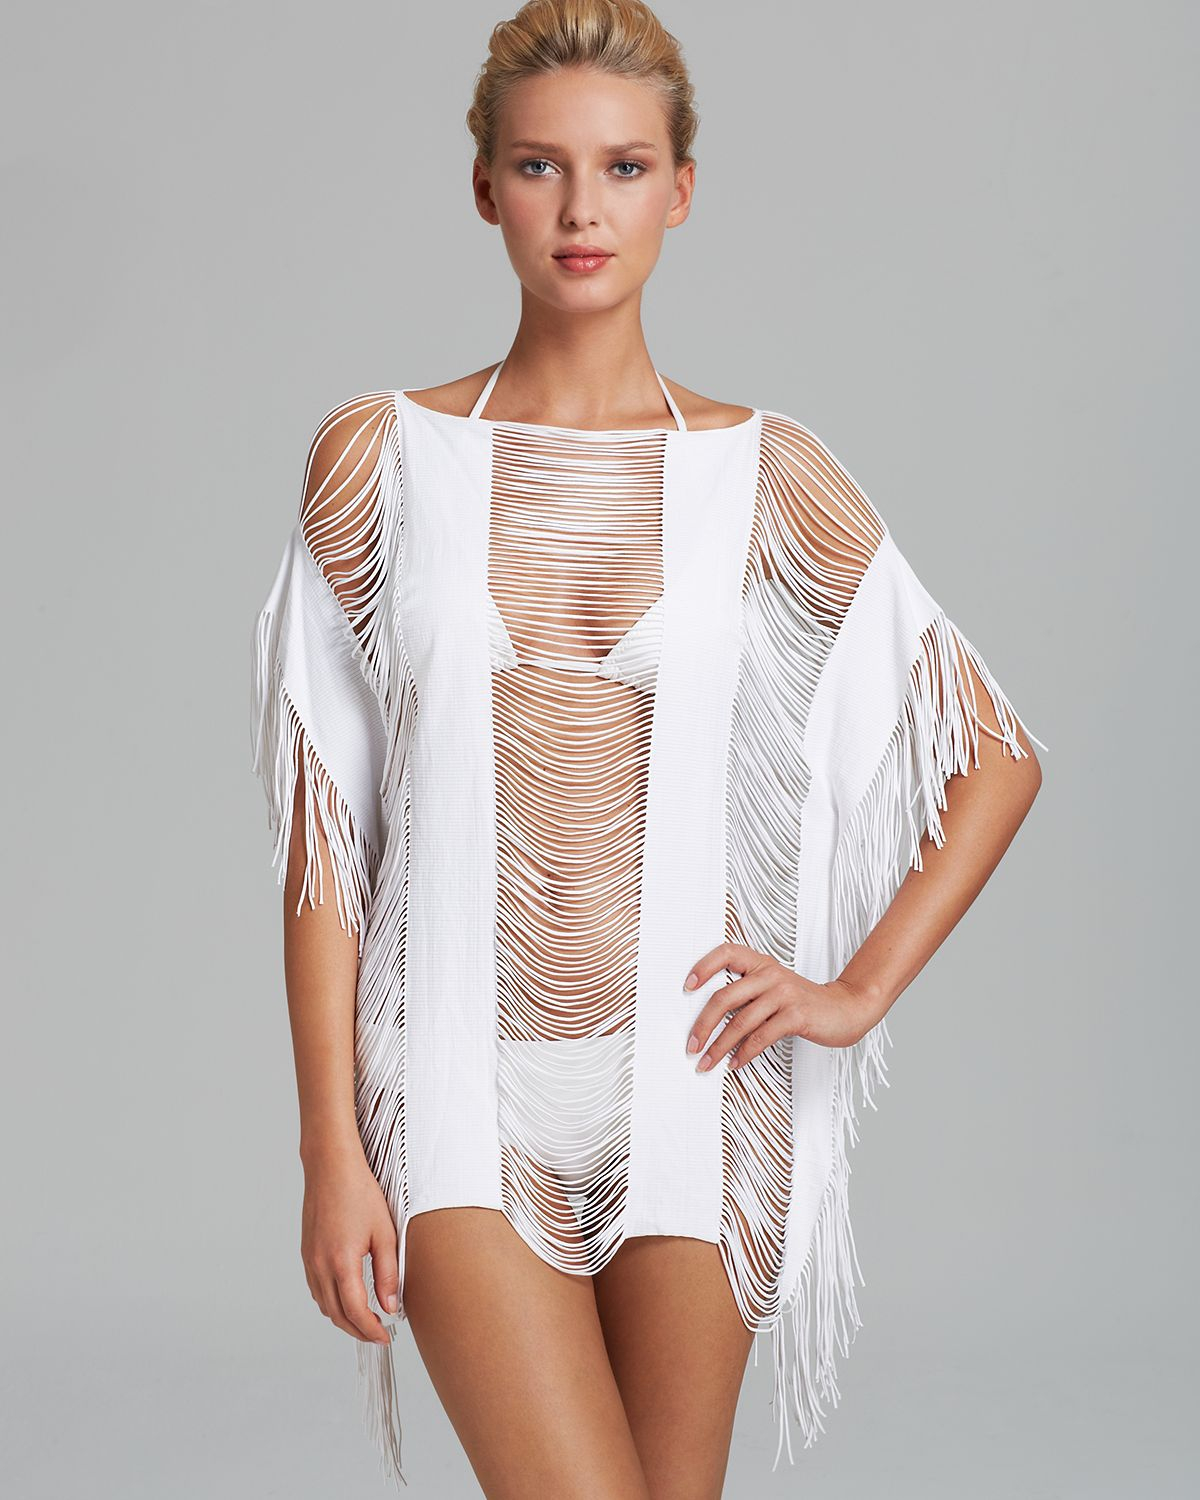 Free shipping & returns on beach cover-ups at ganjamoney.tk Browse our selection of swimsuit cover-ups, beach dresses & bikini cover-up from Becca, La .